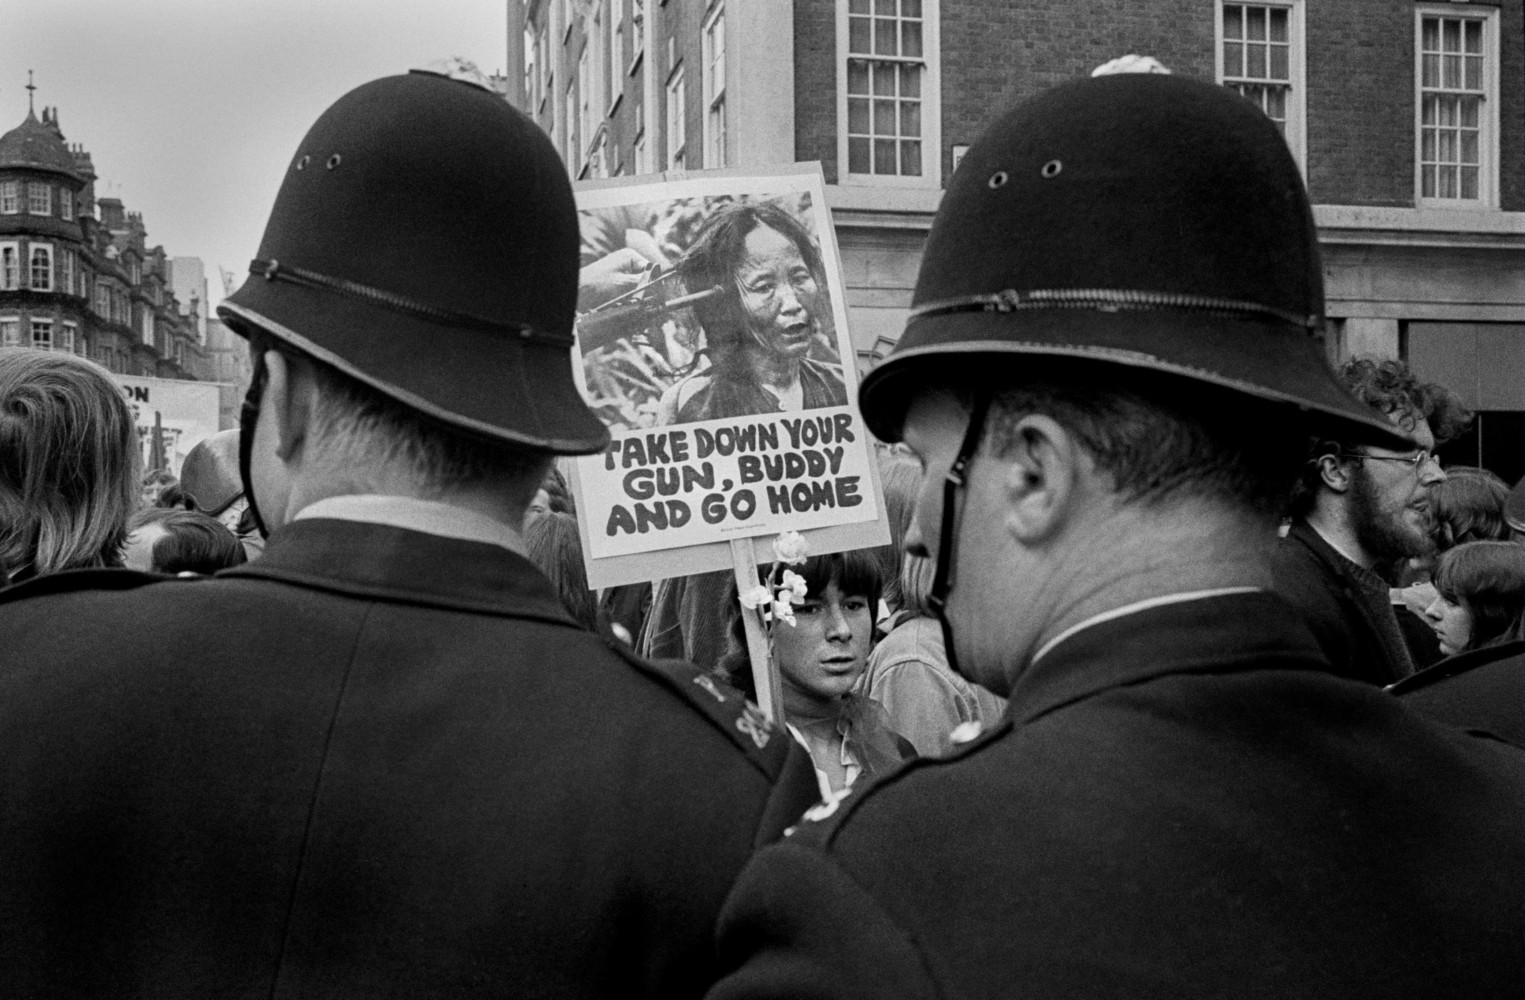 50 Years On: The Anti-Vietnam War Protests in London • David Hurn